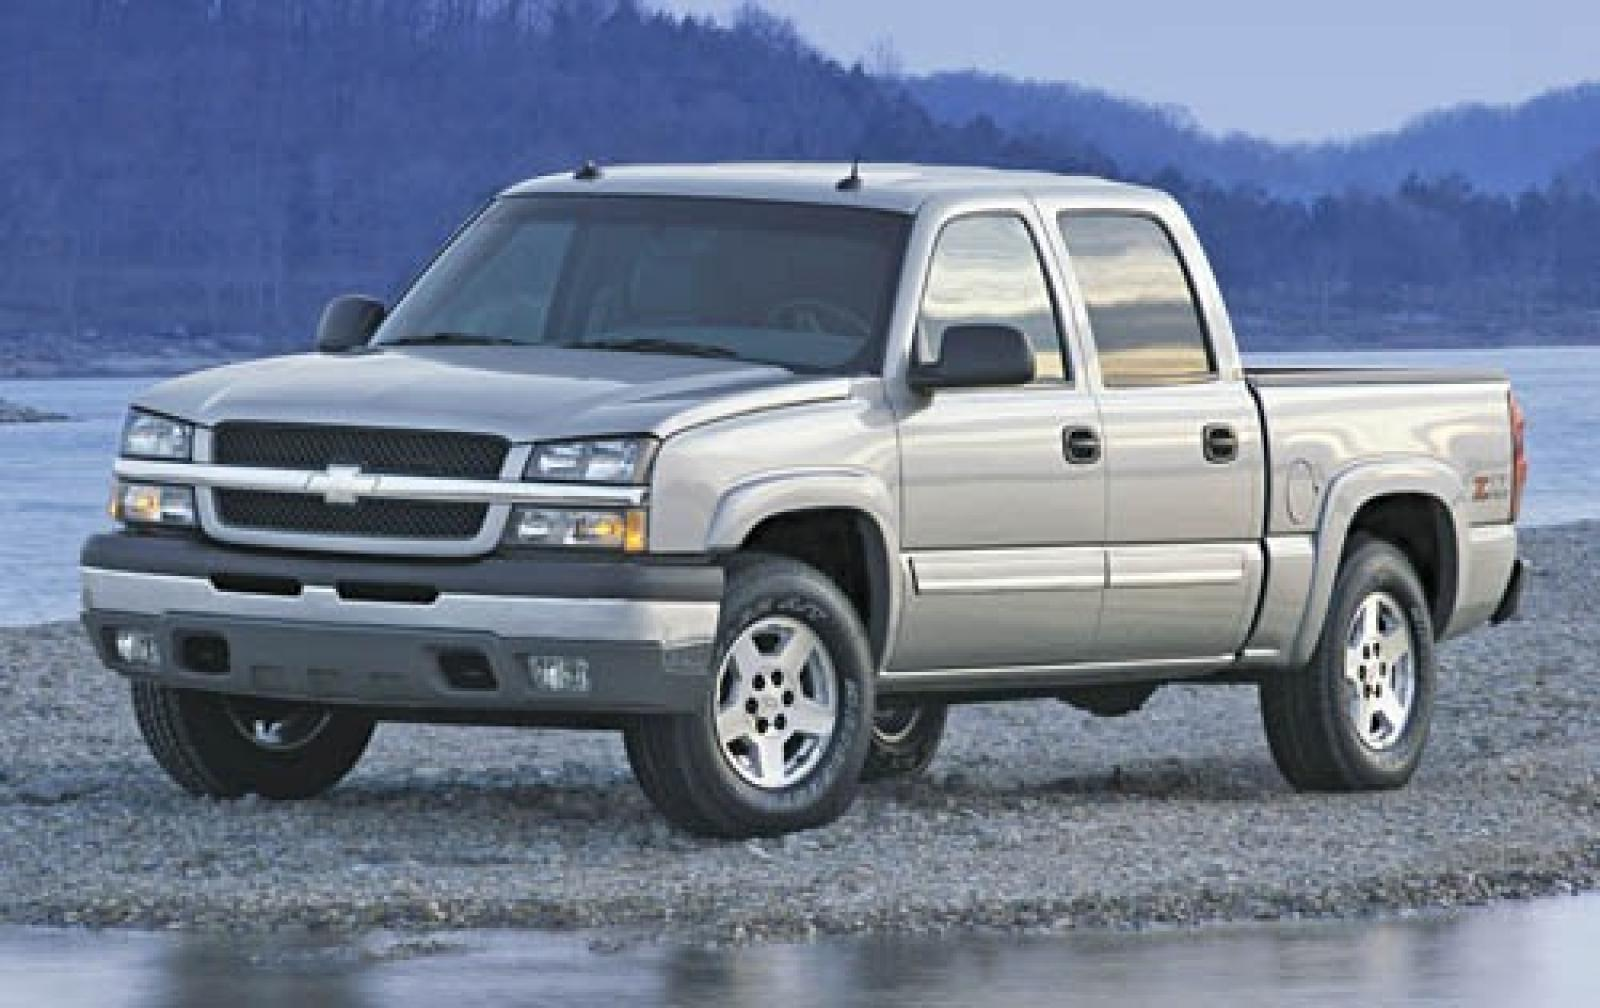 hight resolution of  2005 chevrolet silverado exterior 5 800 1024 1280 1600 origin